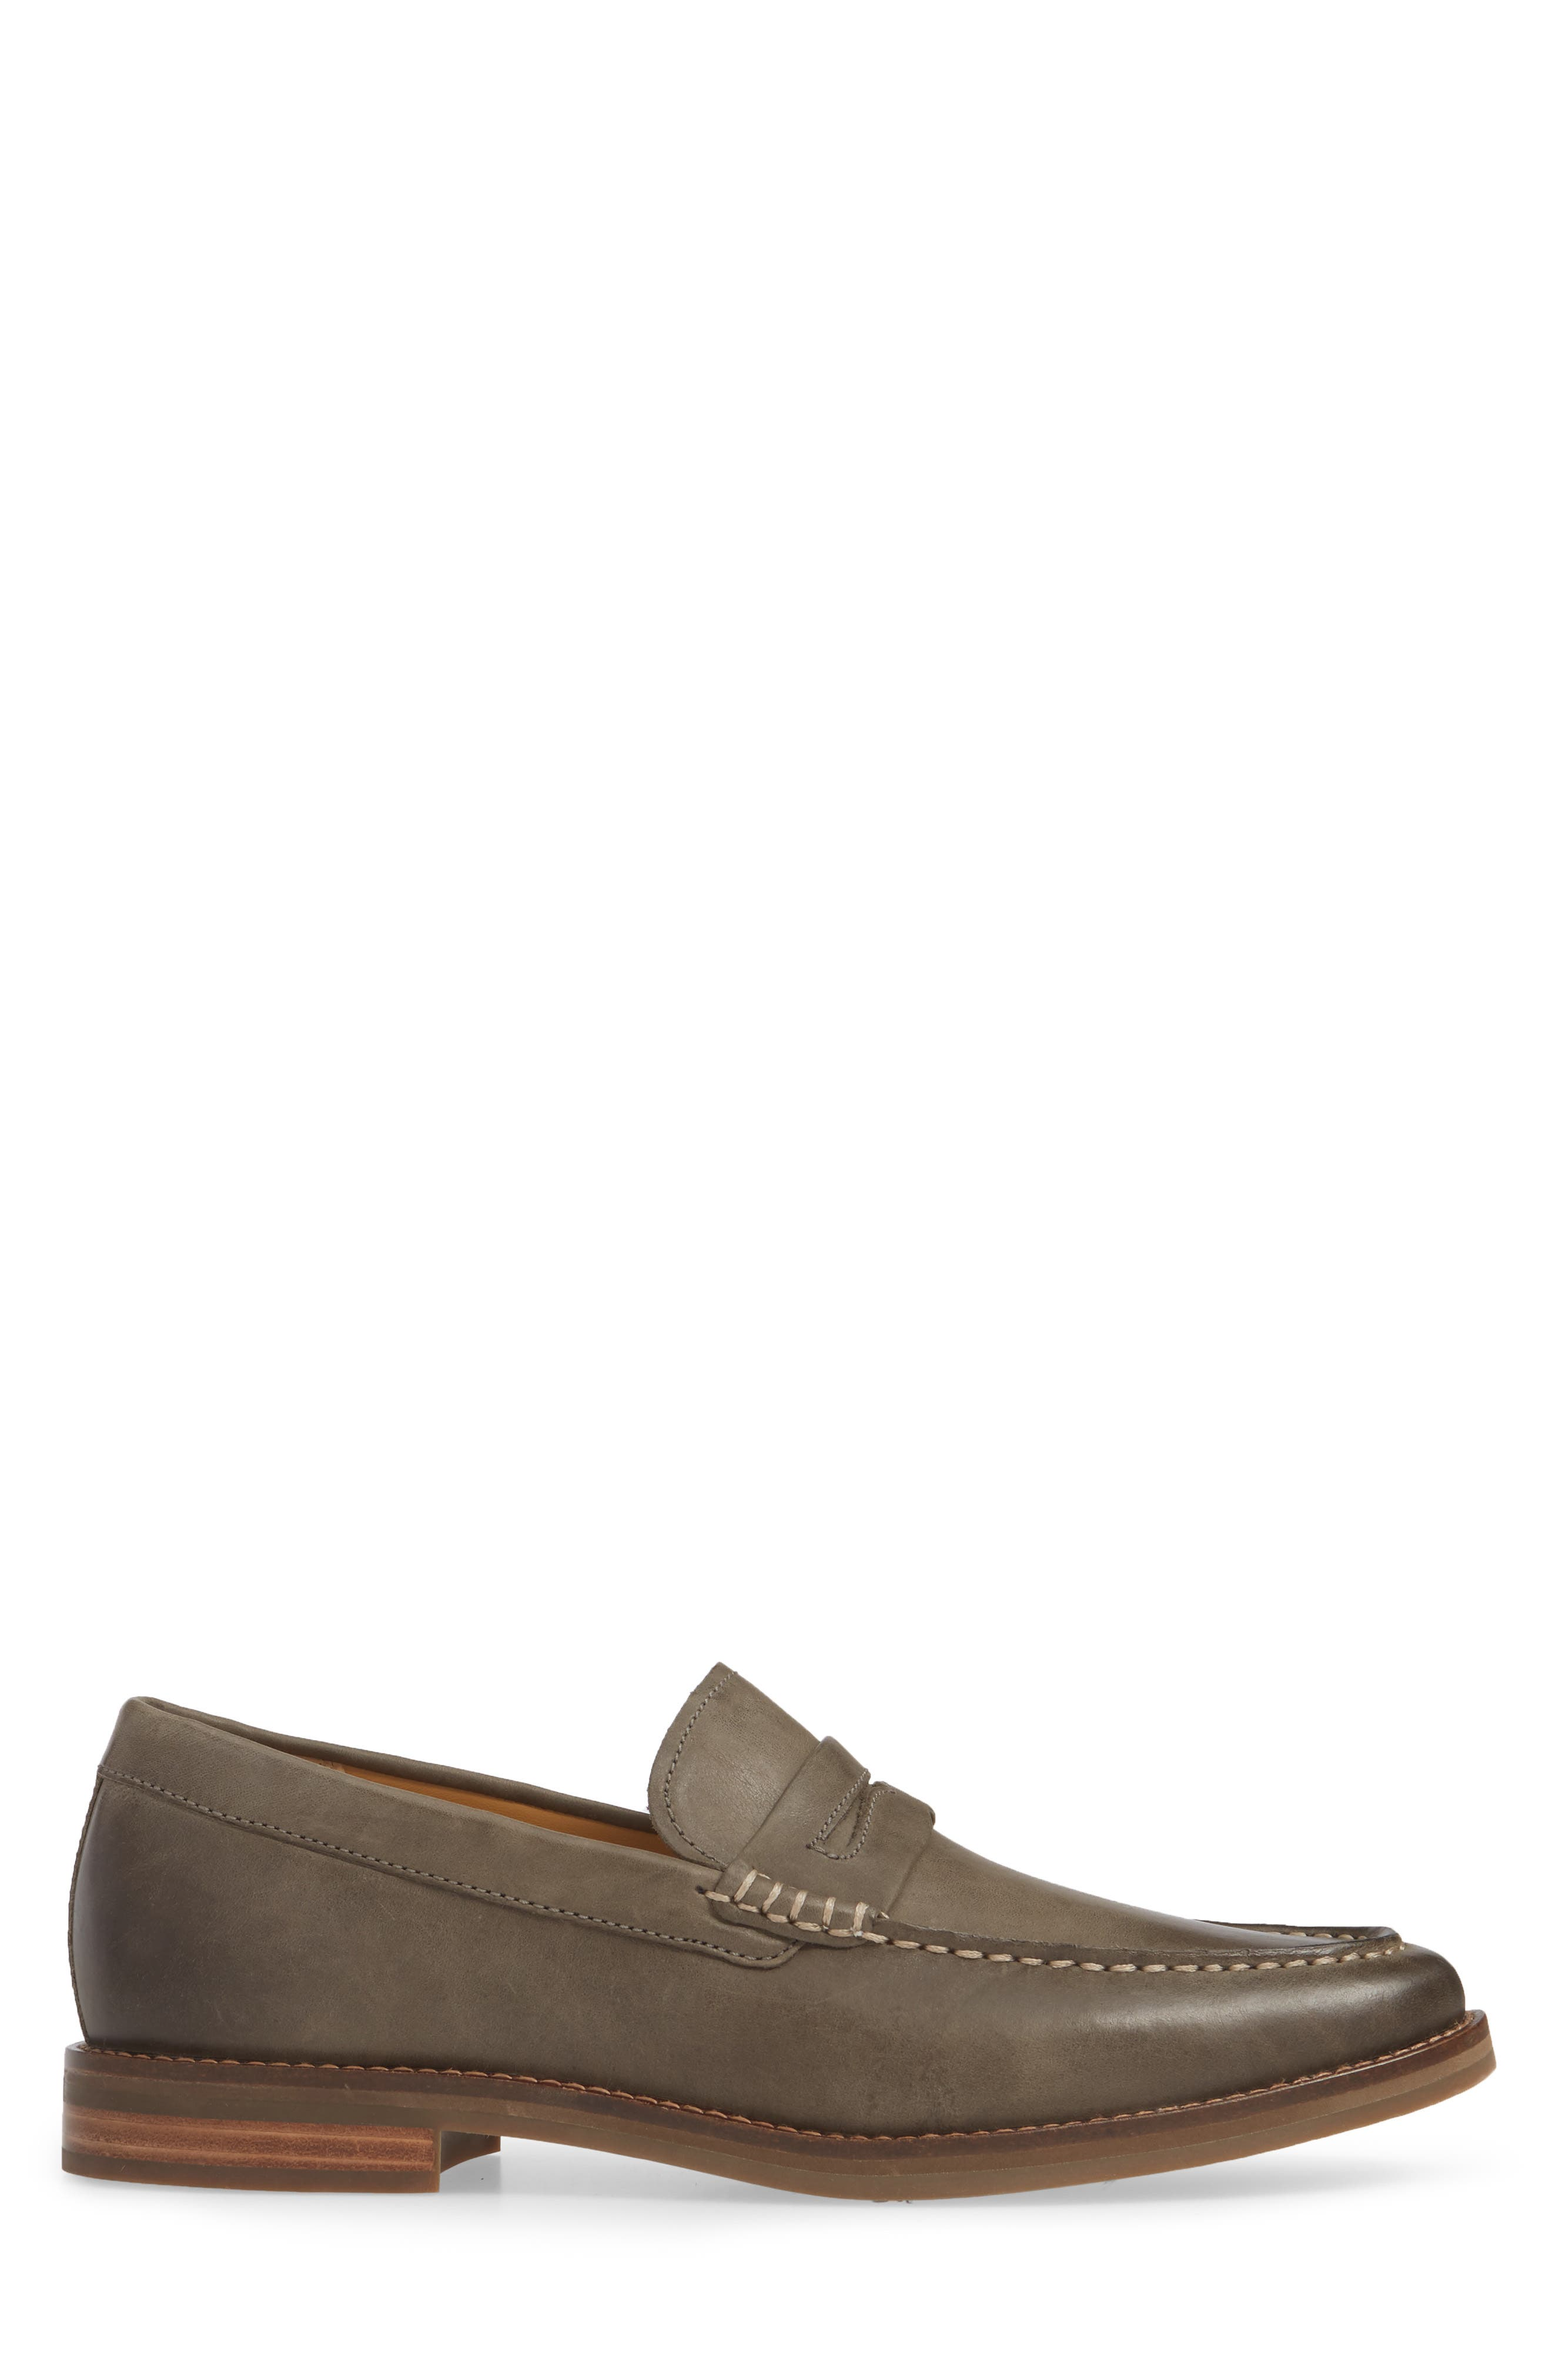 SPERRY, Exeter Penny Loafer, Alternate thumbnail 3, color, GREY